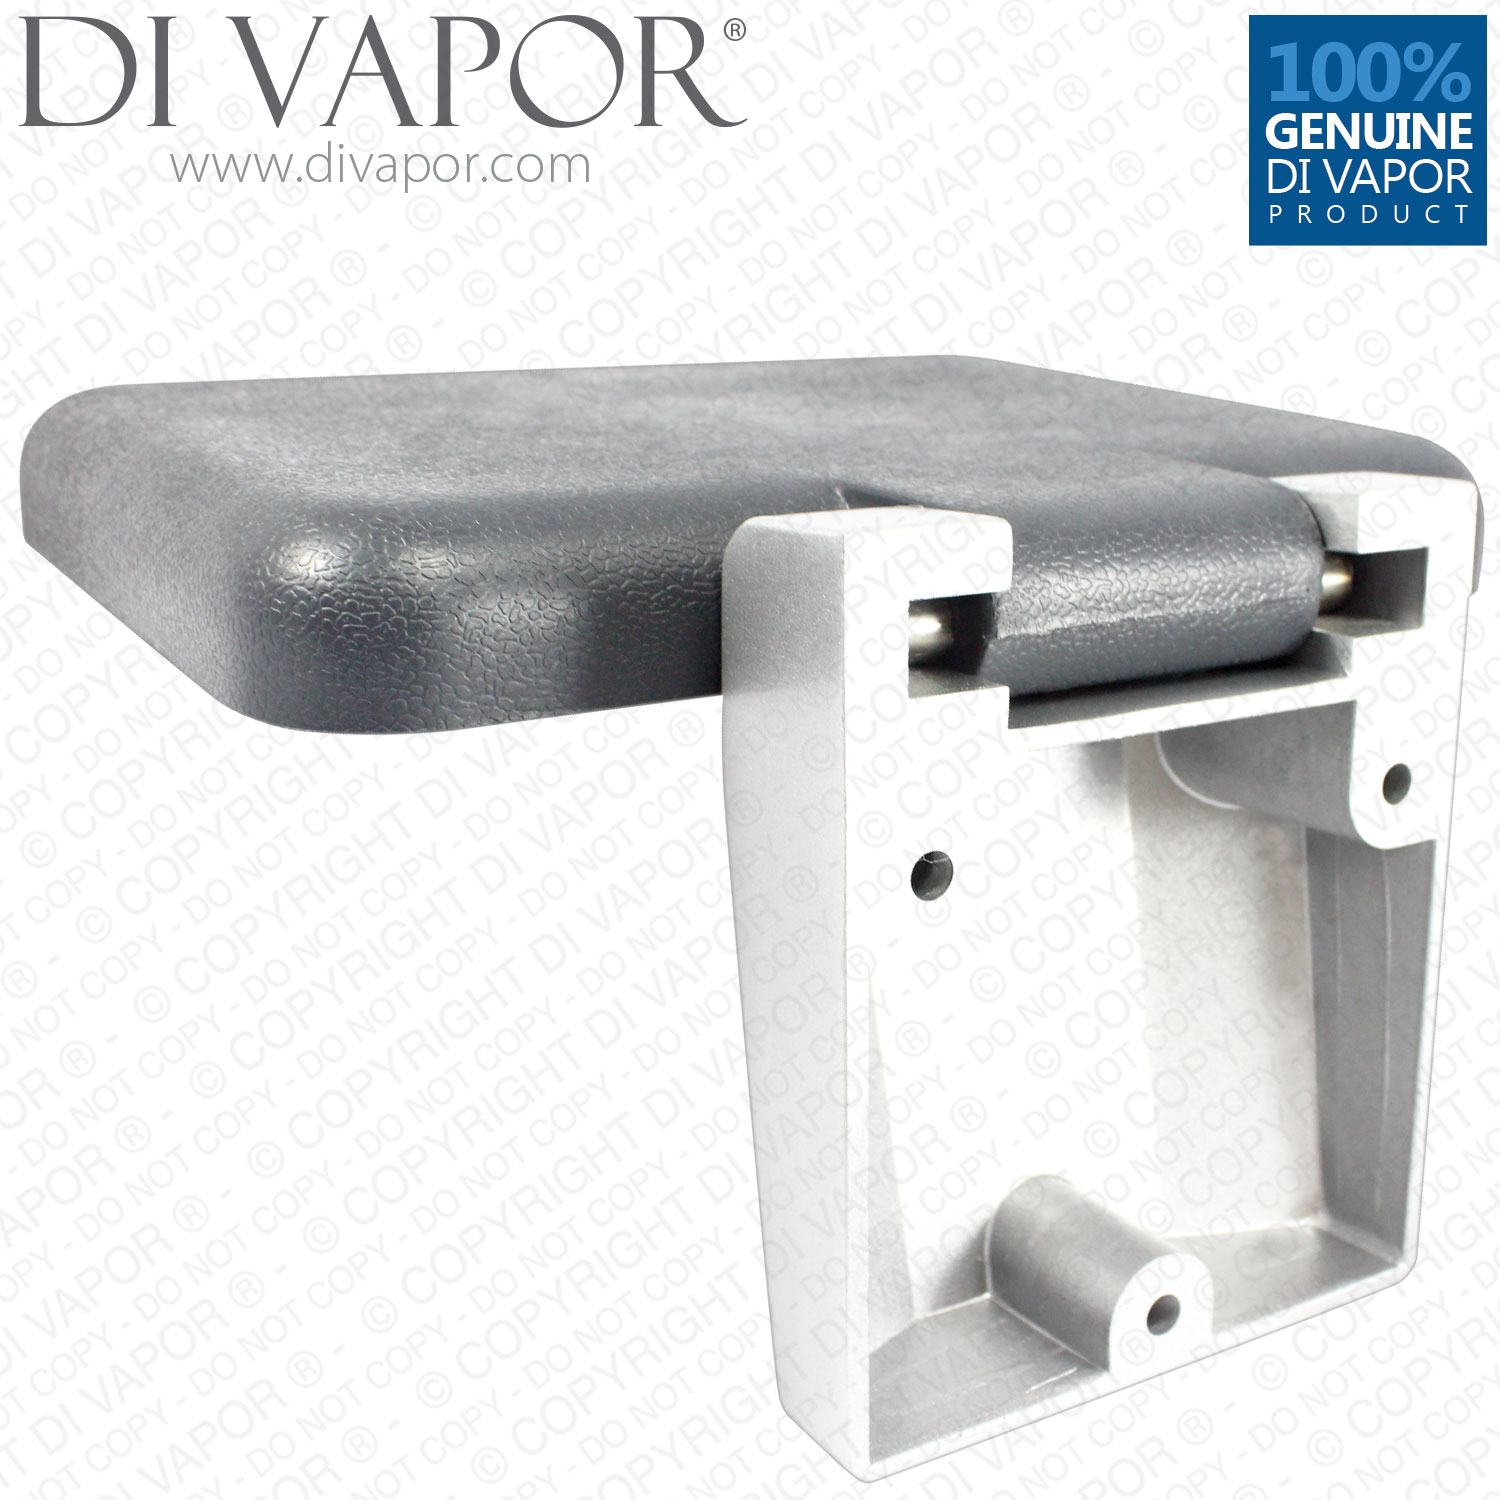 Square Folding Seat Wall Mounted For Shower 30cm Folding